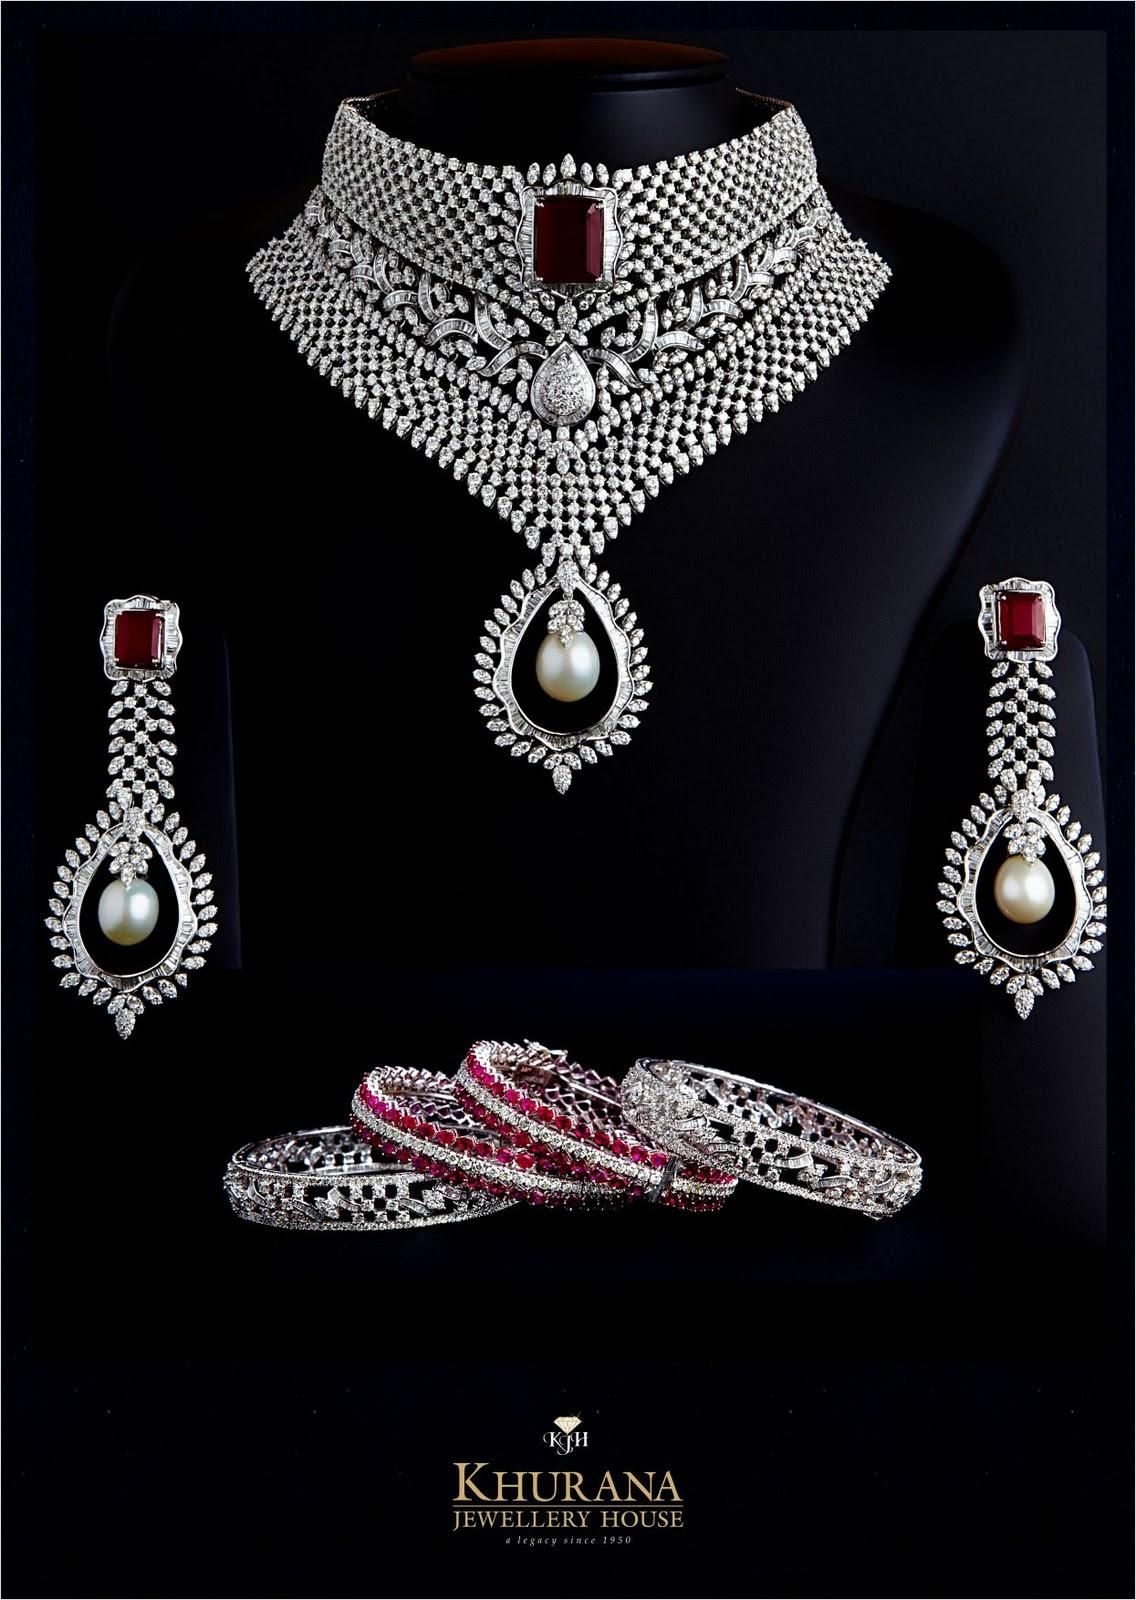 Diamond necklace pendant designs diamond jewellery banner diamond